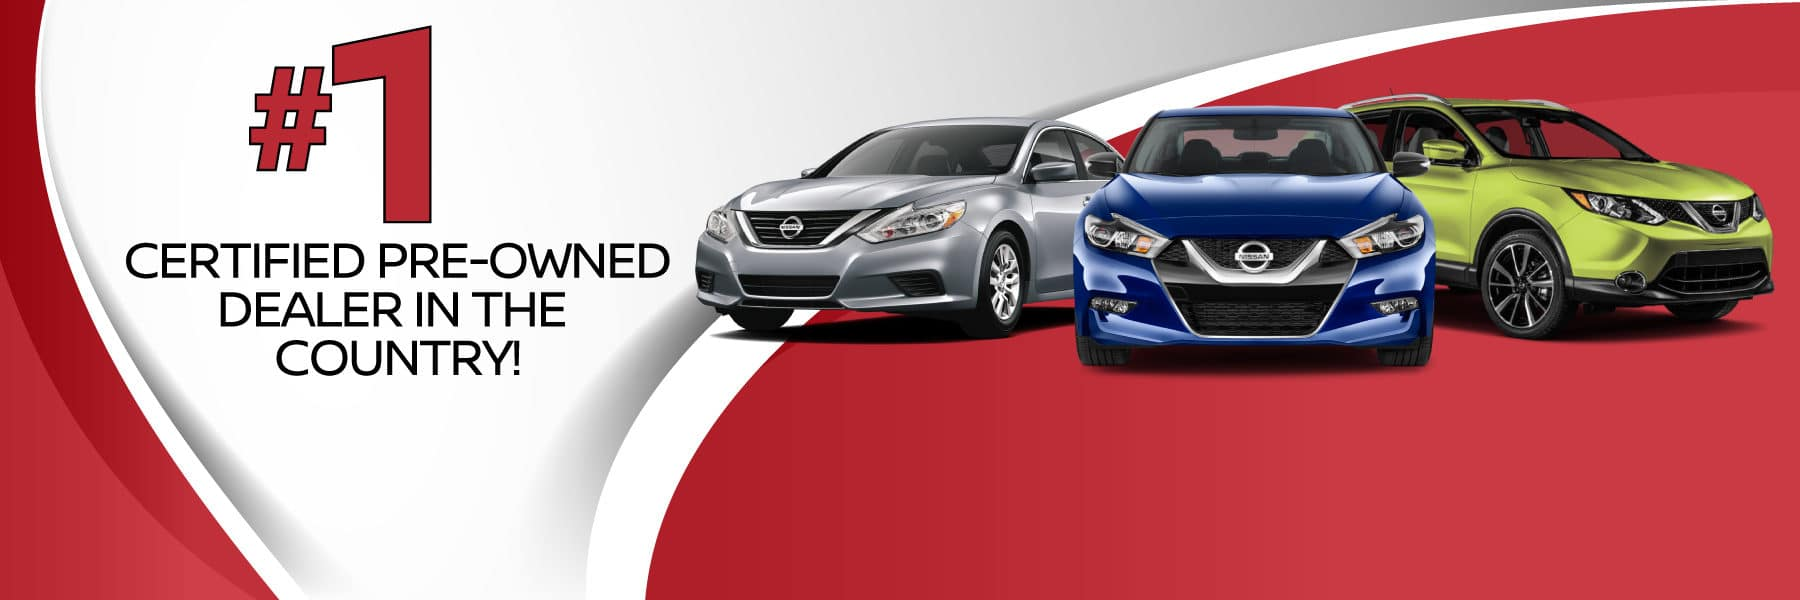 Shop CPO Vehicles at Berman Nissan of Chicago, the #1 Certified Pre-Owned Dealer in the Country!